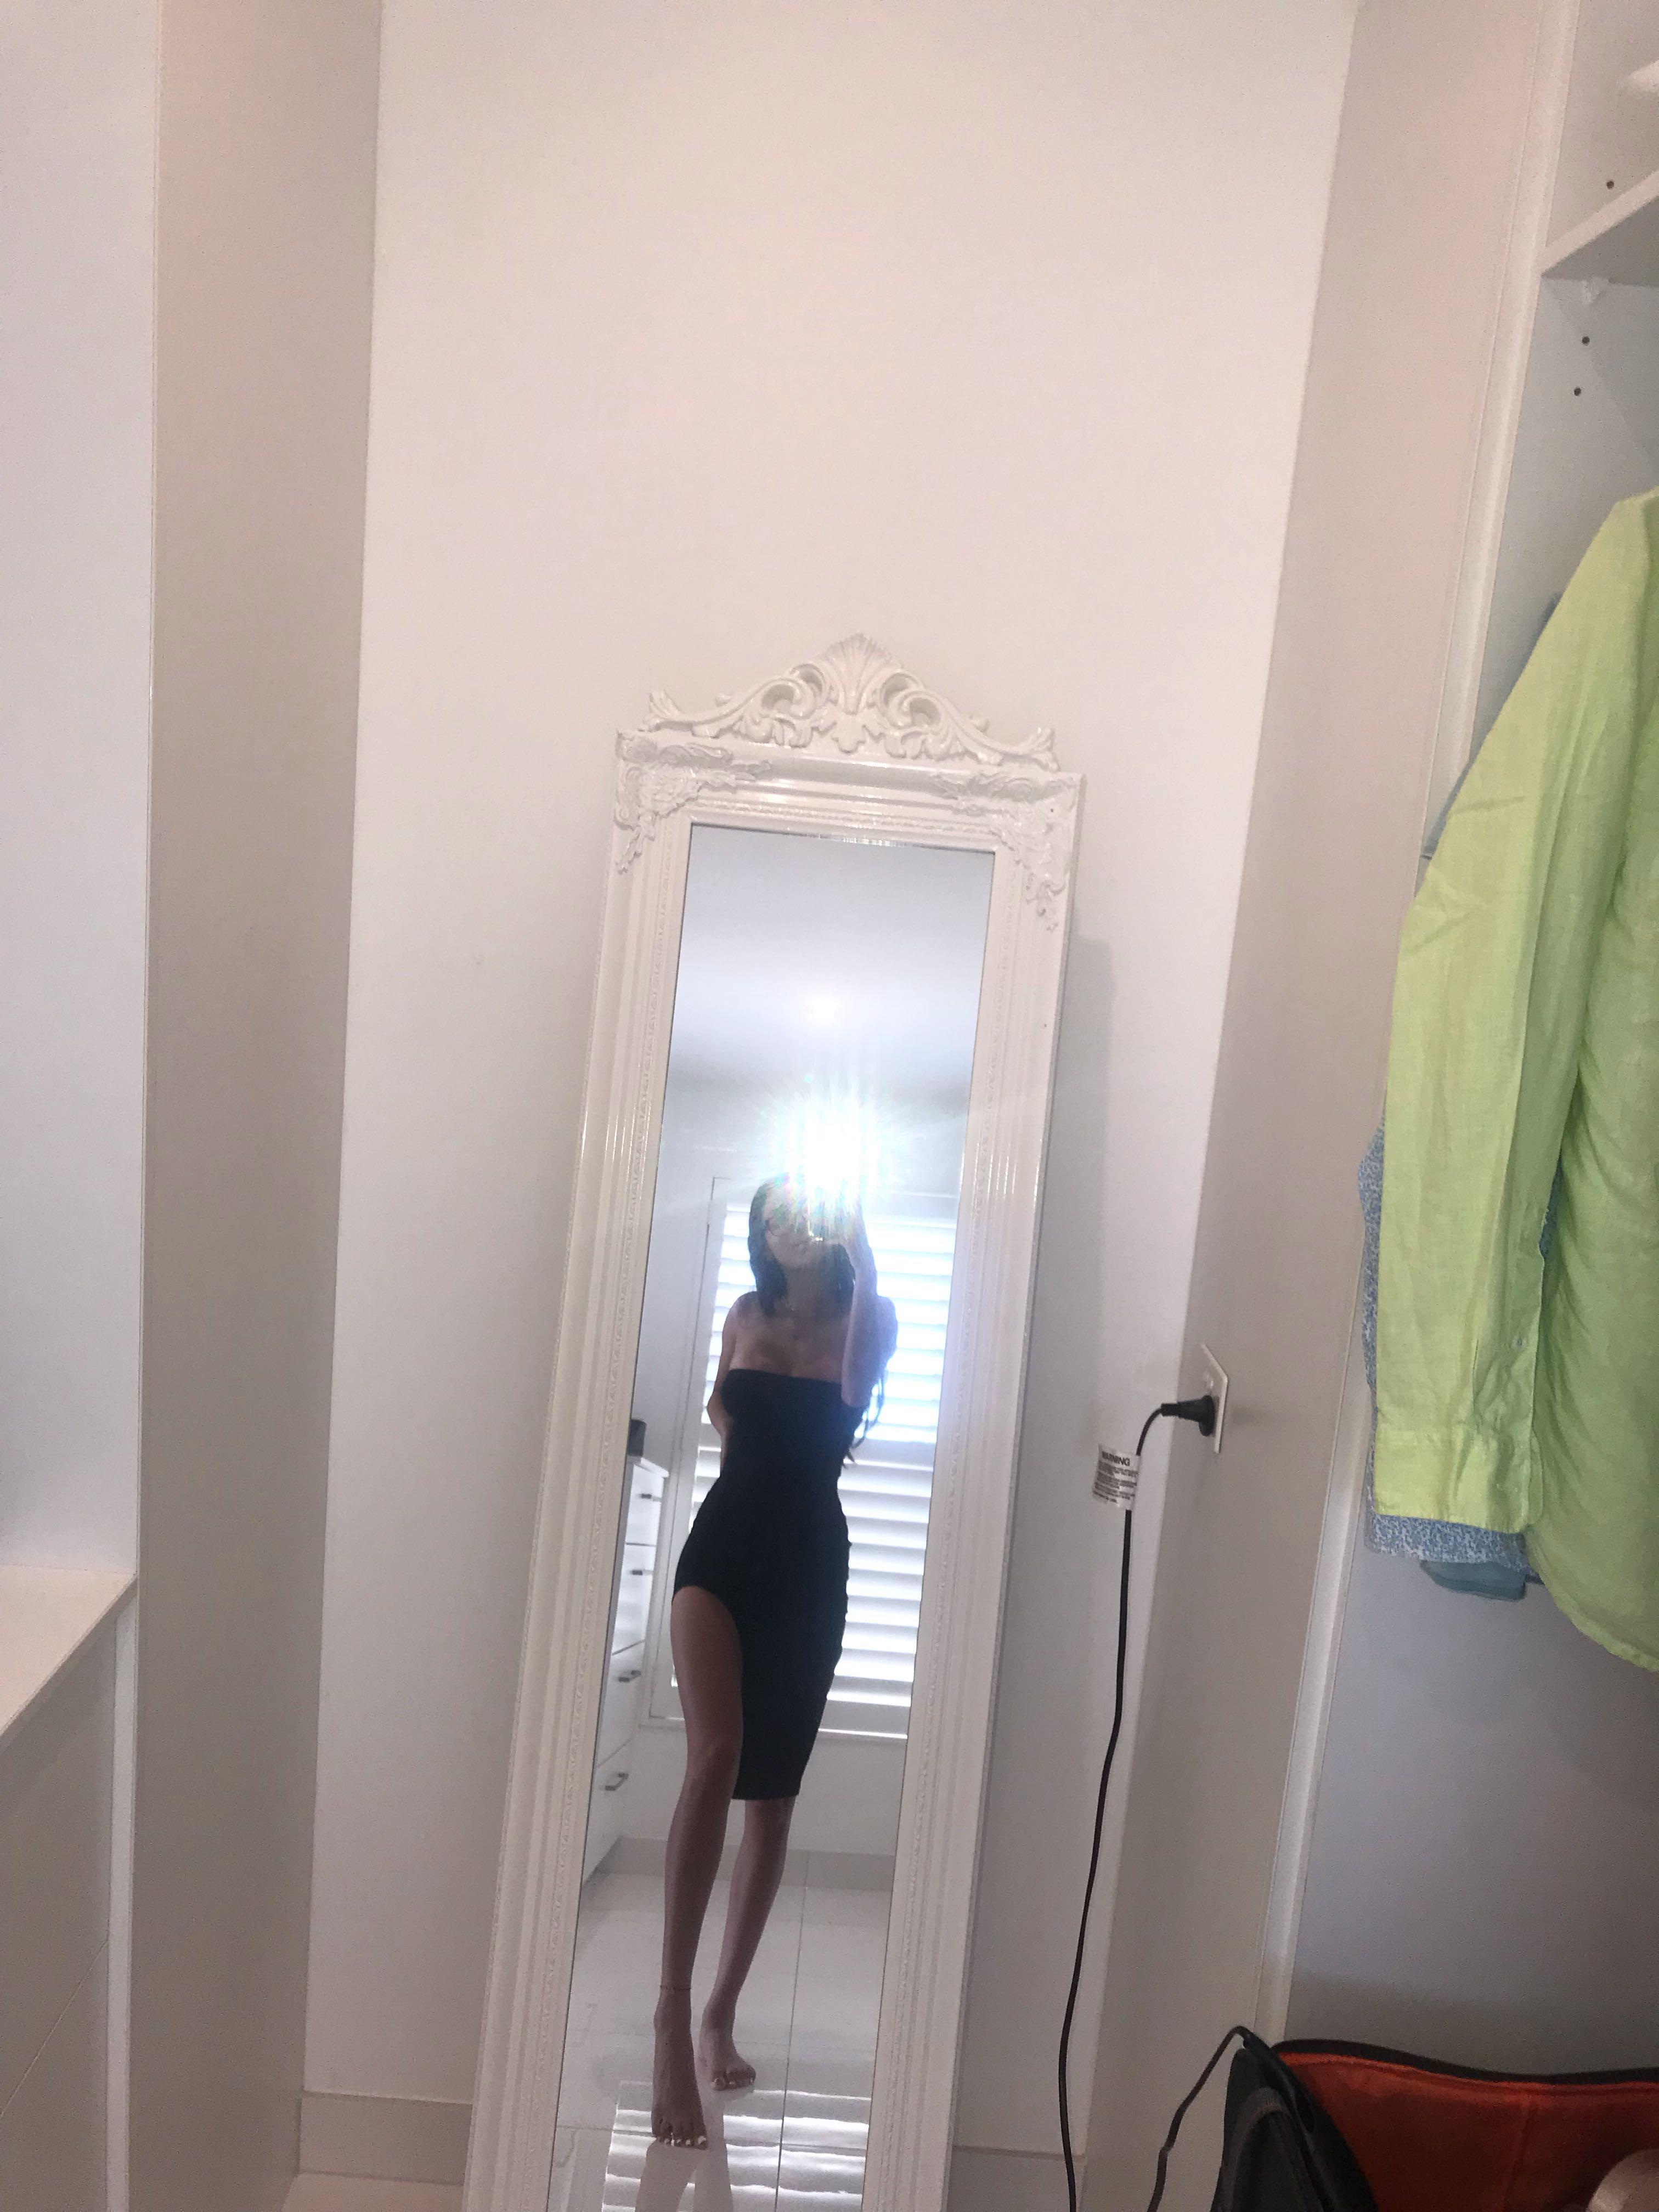 pretty little thing - strapless black dress with knee slit